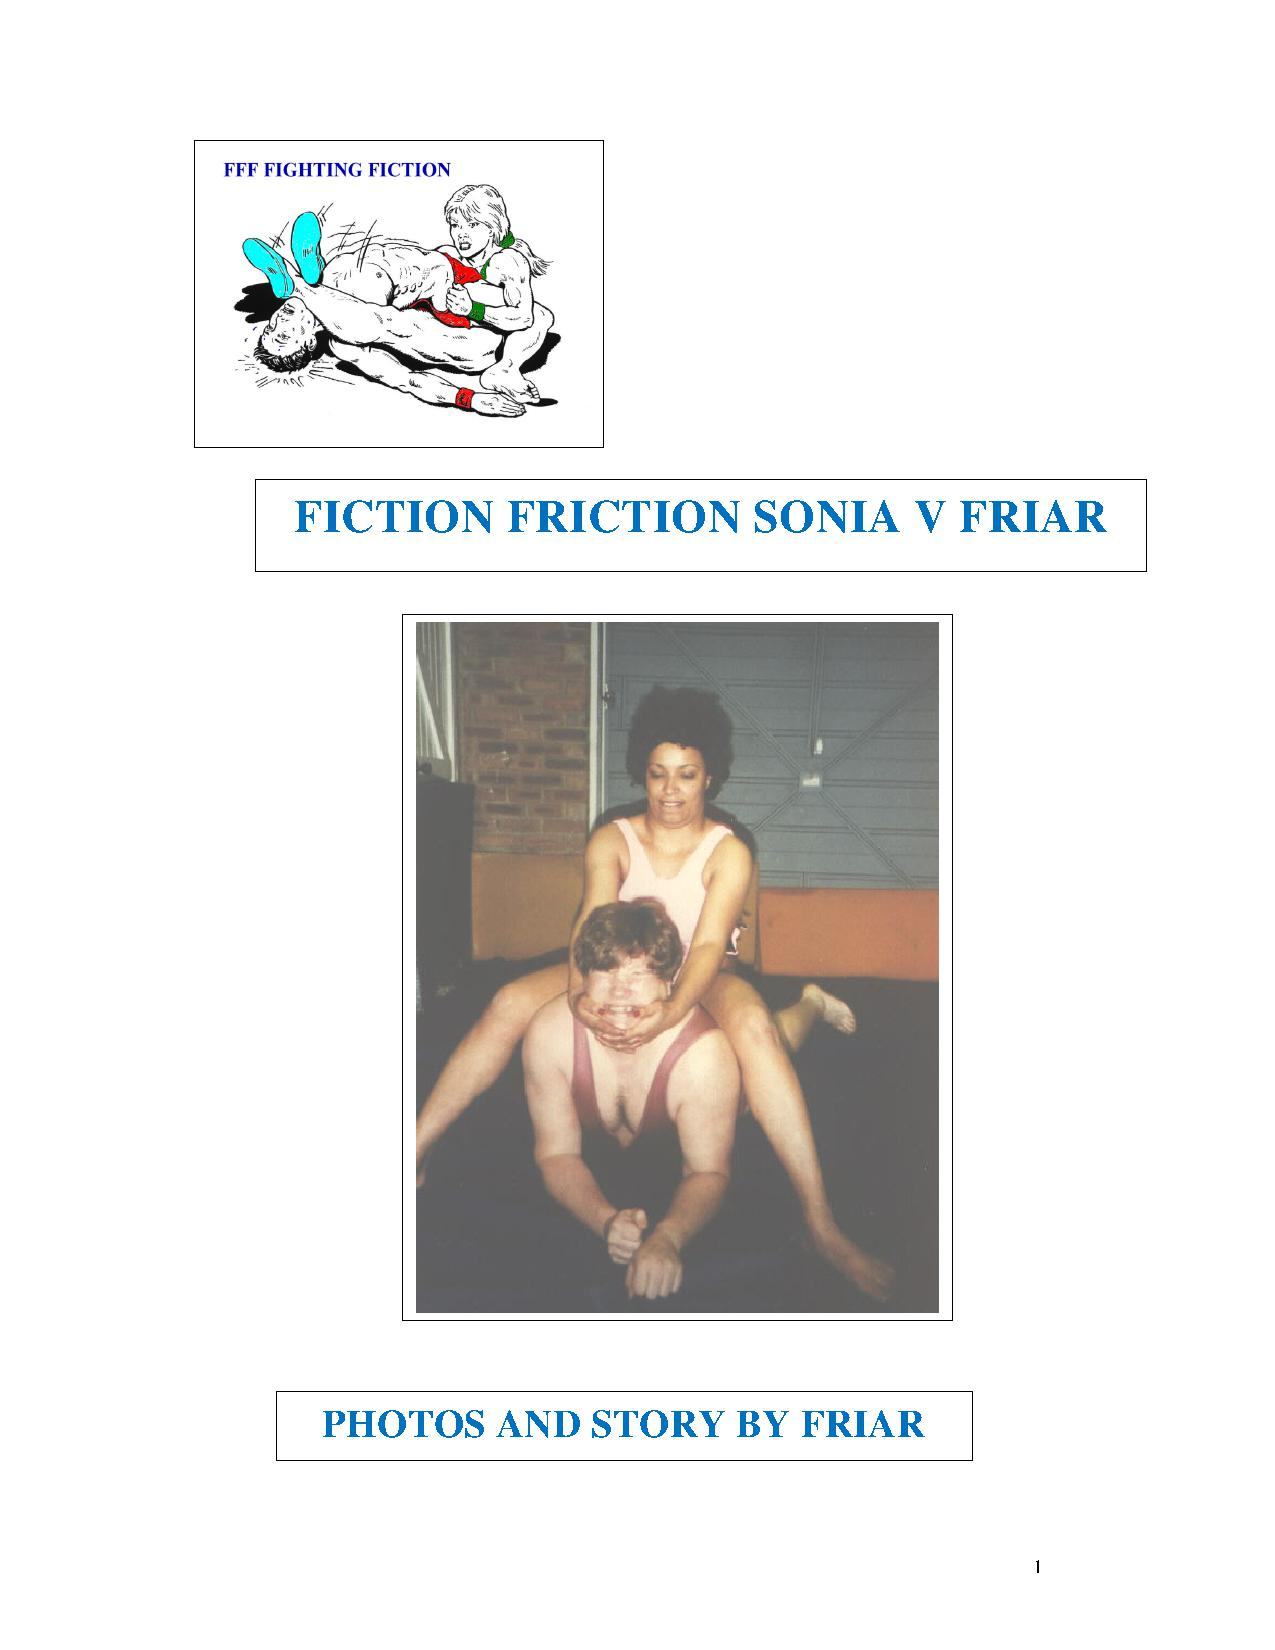 fiction_friction_cvr_1